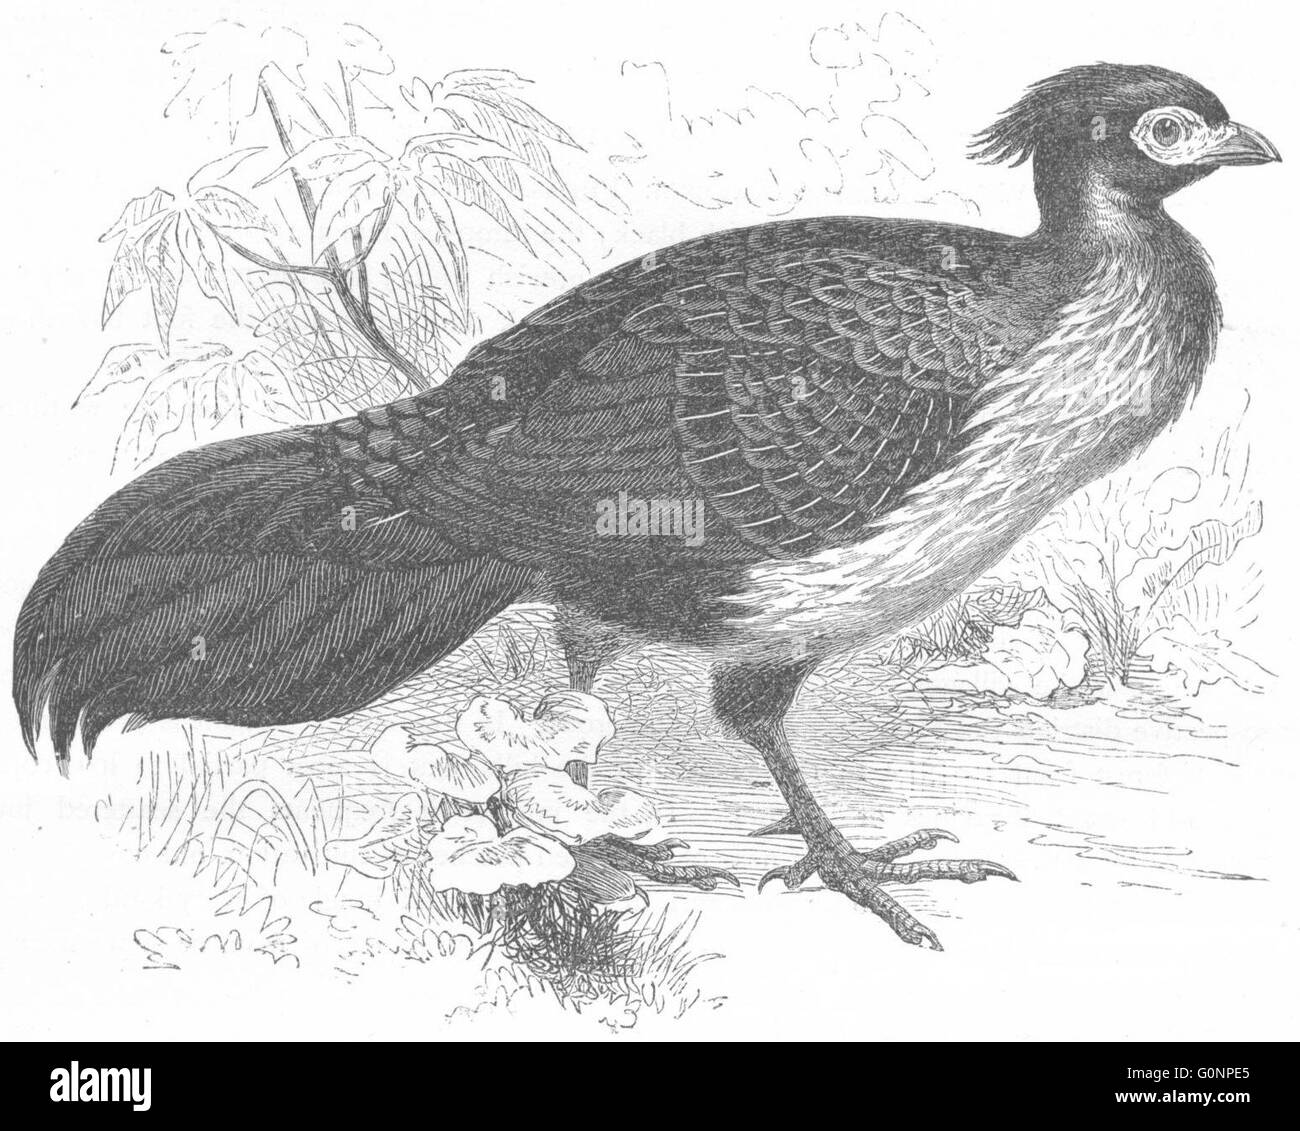 GALLINACEOUS PHASIANIDAE: Kaleege, Black Pheasant, antique print c1870 - Stock Image